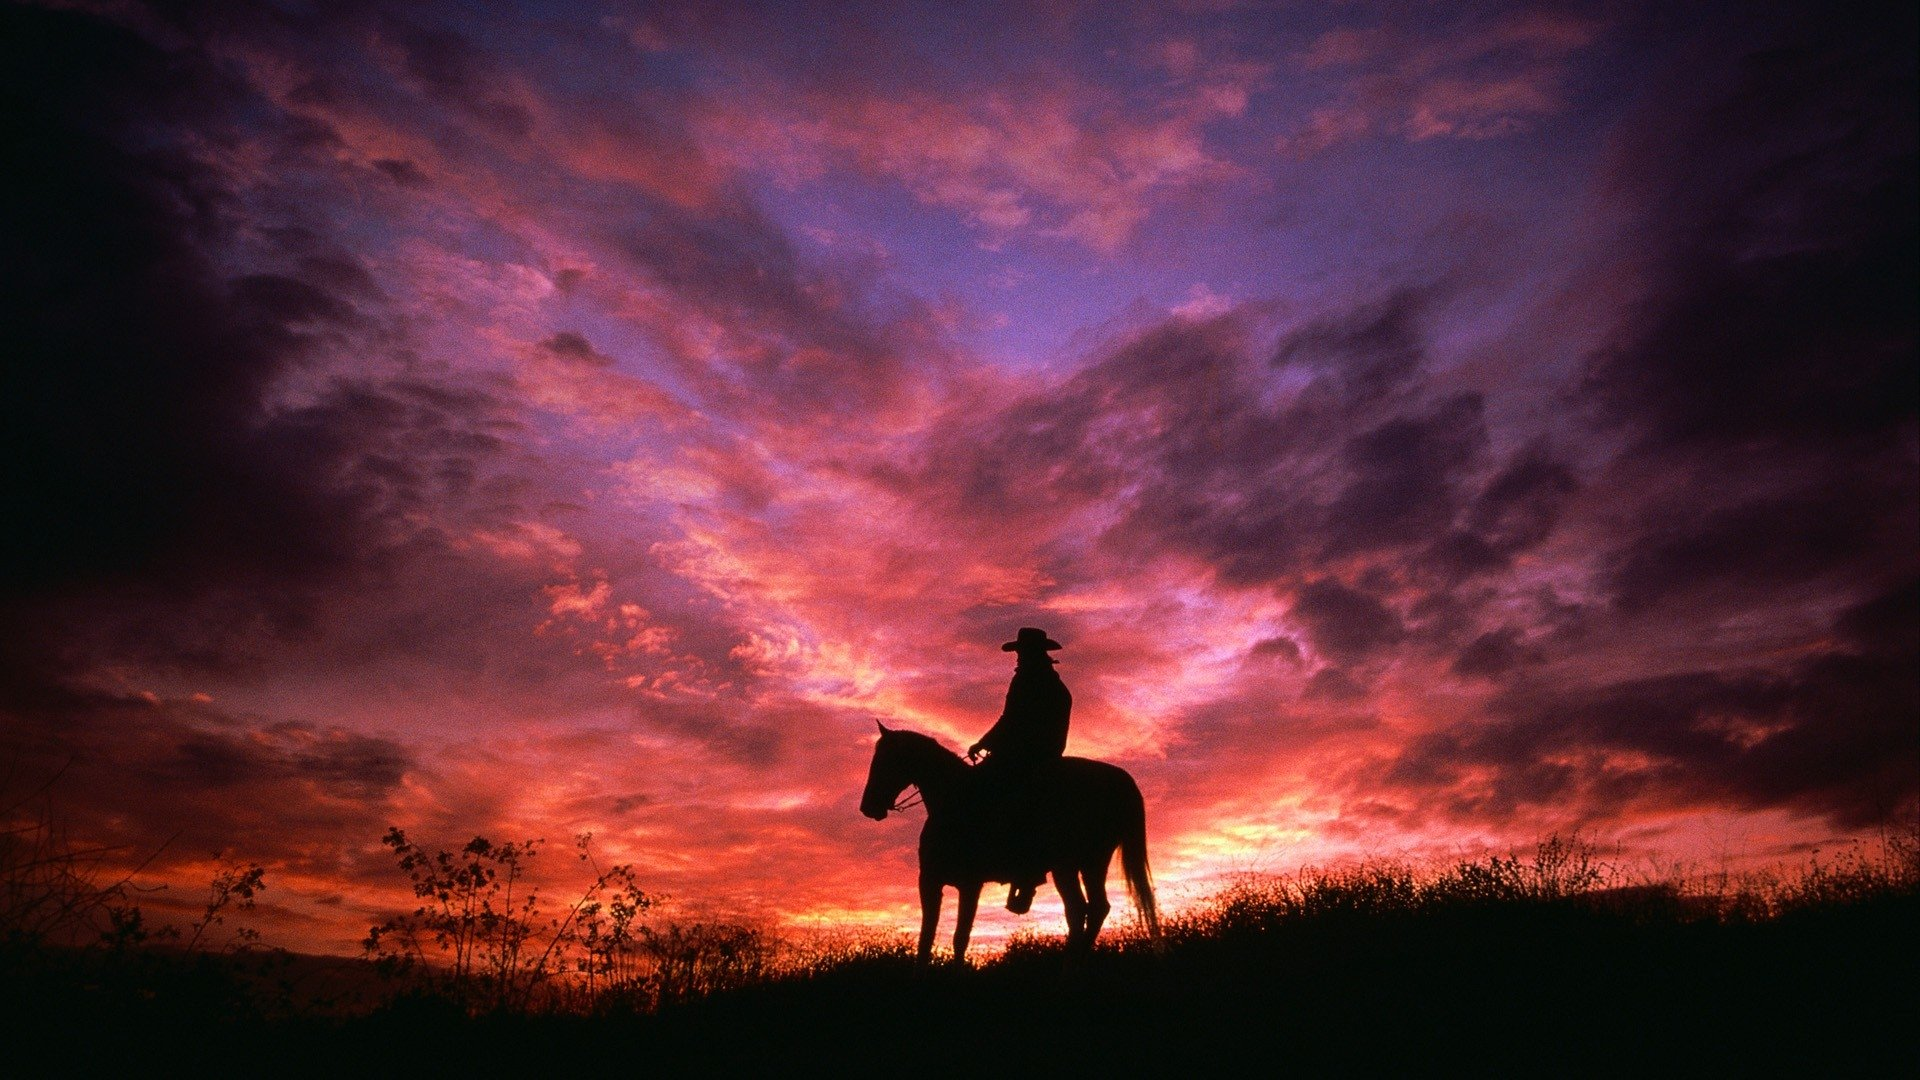 677490 Title Cowboy On His Horse In Sunset Silhouette Cowboy On Horse Silhouette Sunset 1920x1080 Download Hd Wallpaper Wallpapertip